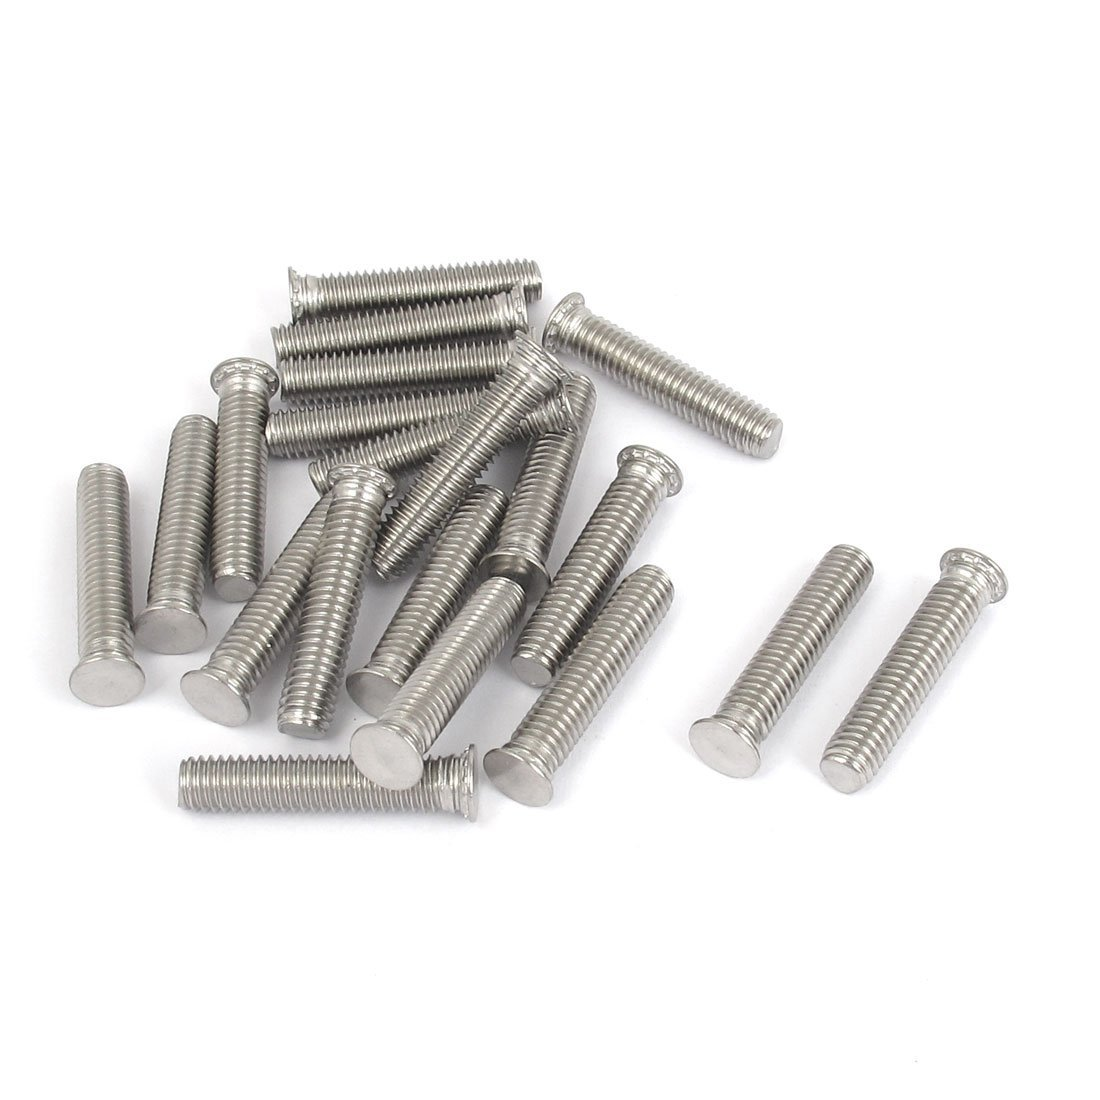 uxcell M6x30mm Flush Head Stainless Steel Self Clinching Threaded Studs 20pcs